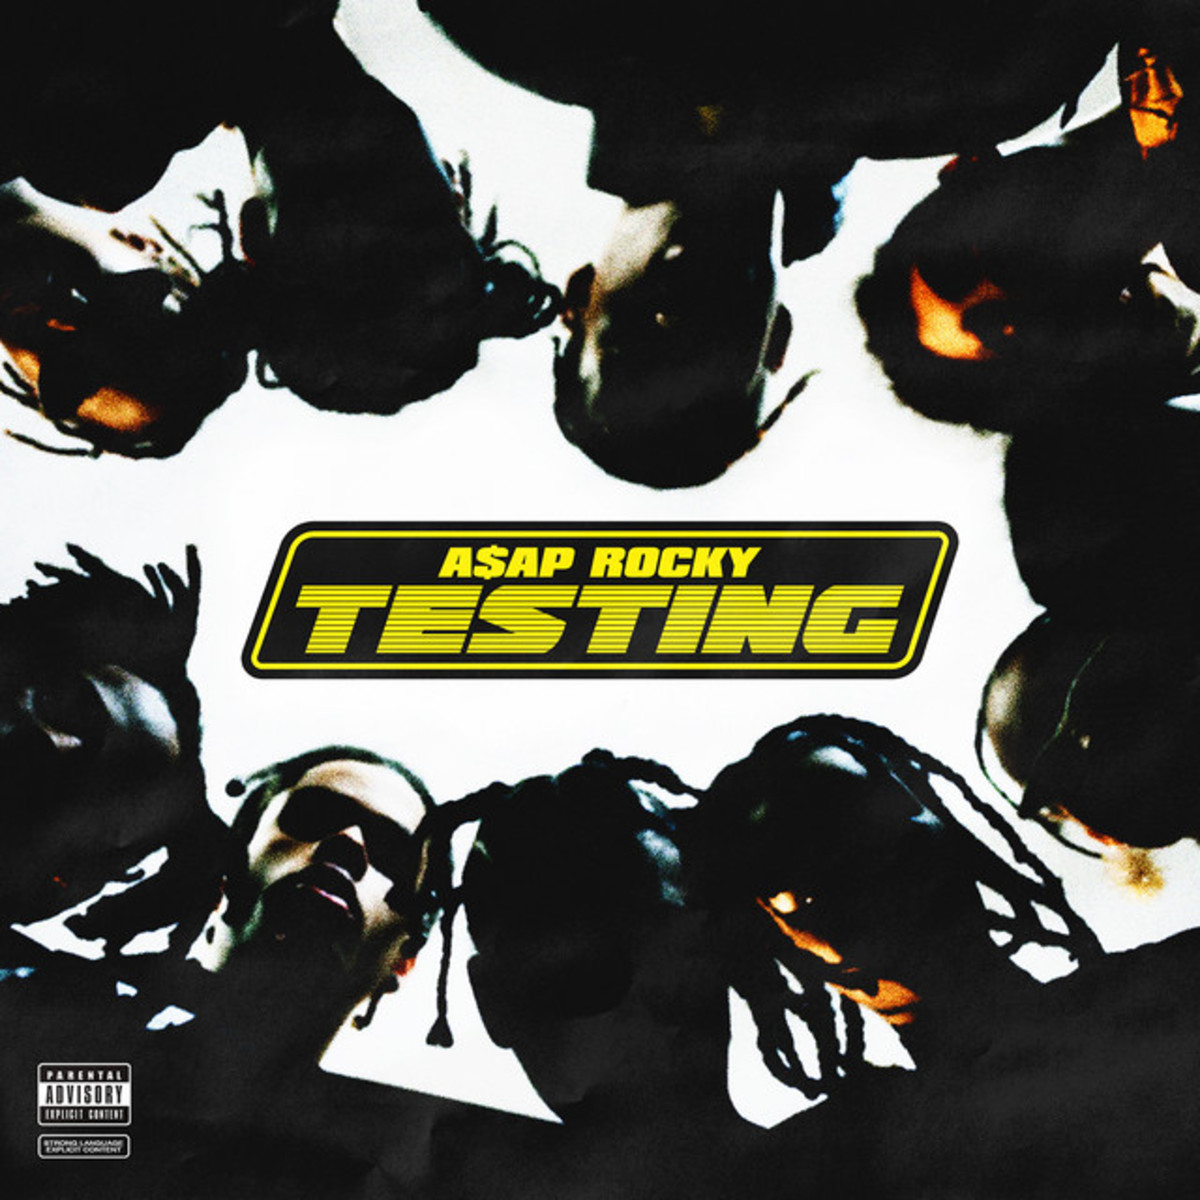 asap-rocky-testing-album-art